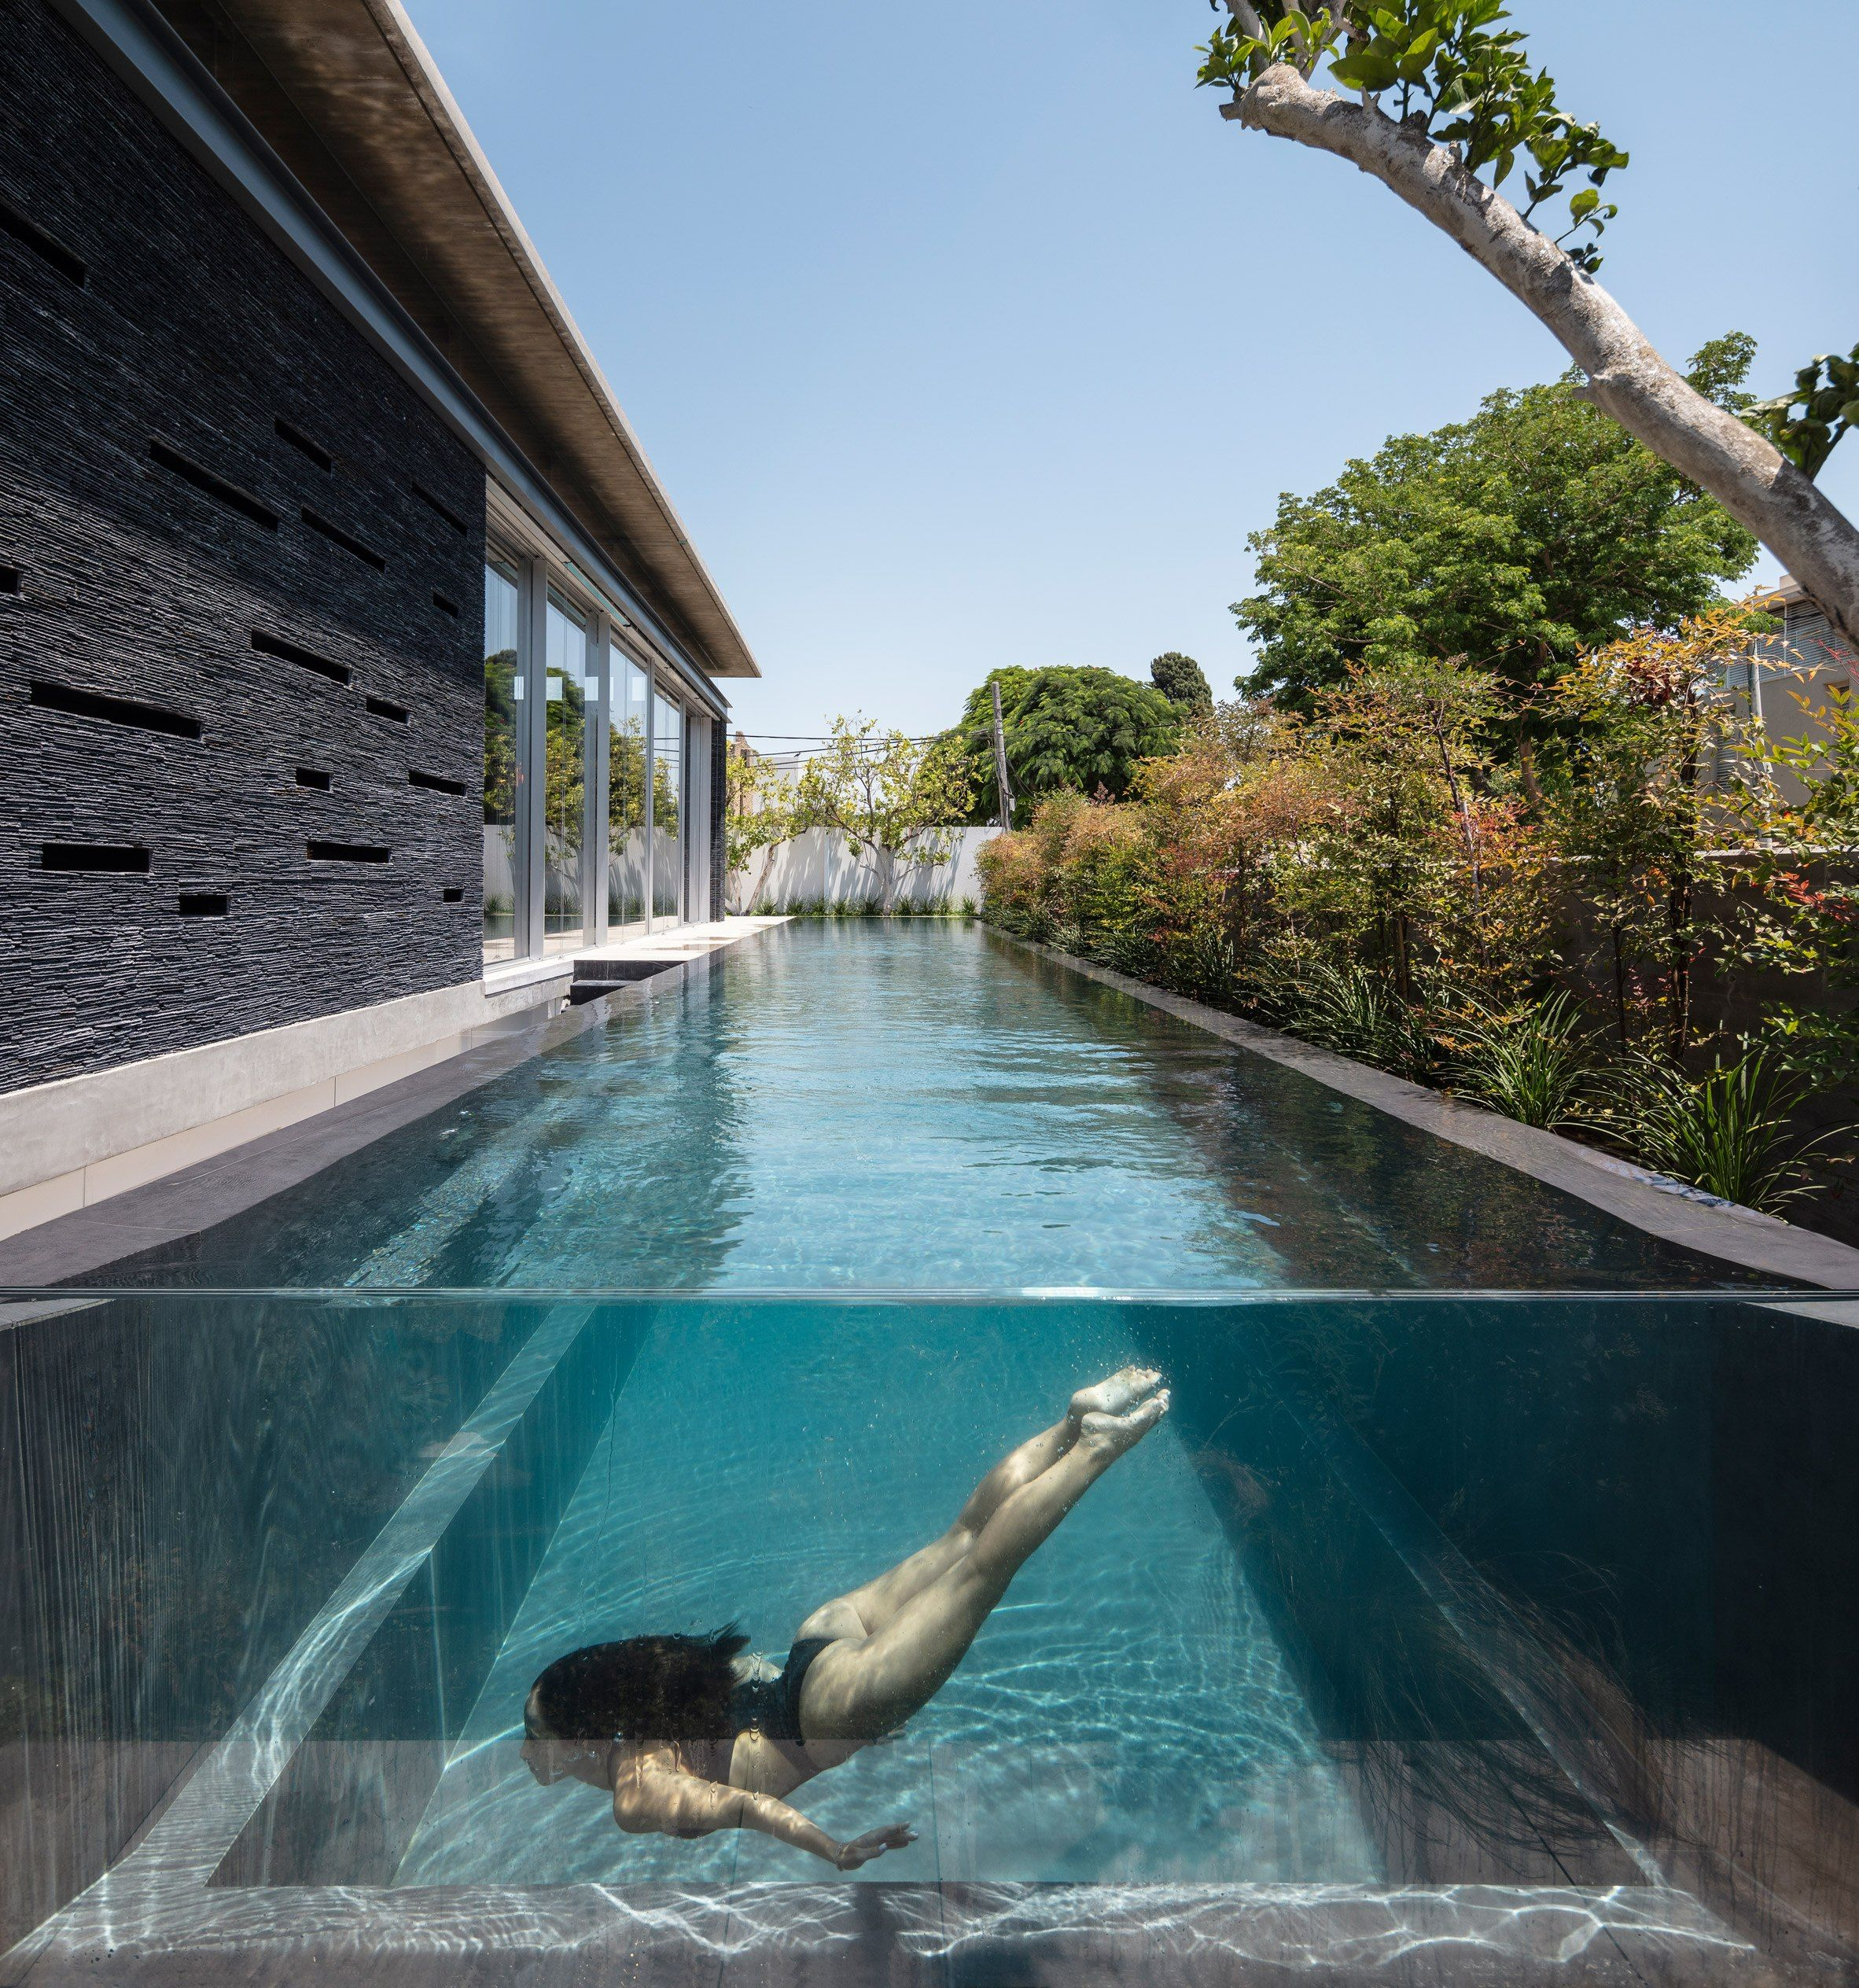 Pavilion House A Modernist Home And Lap Pool By Pitsou Kedem Ignant Pool Swimming Pool Designs Pitsou Kedem